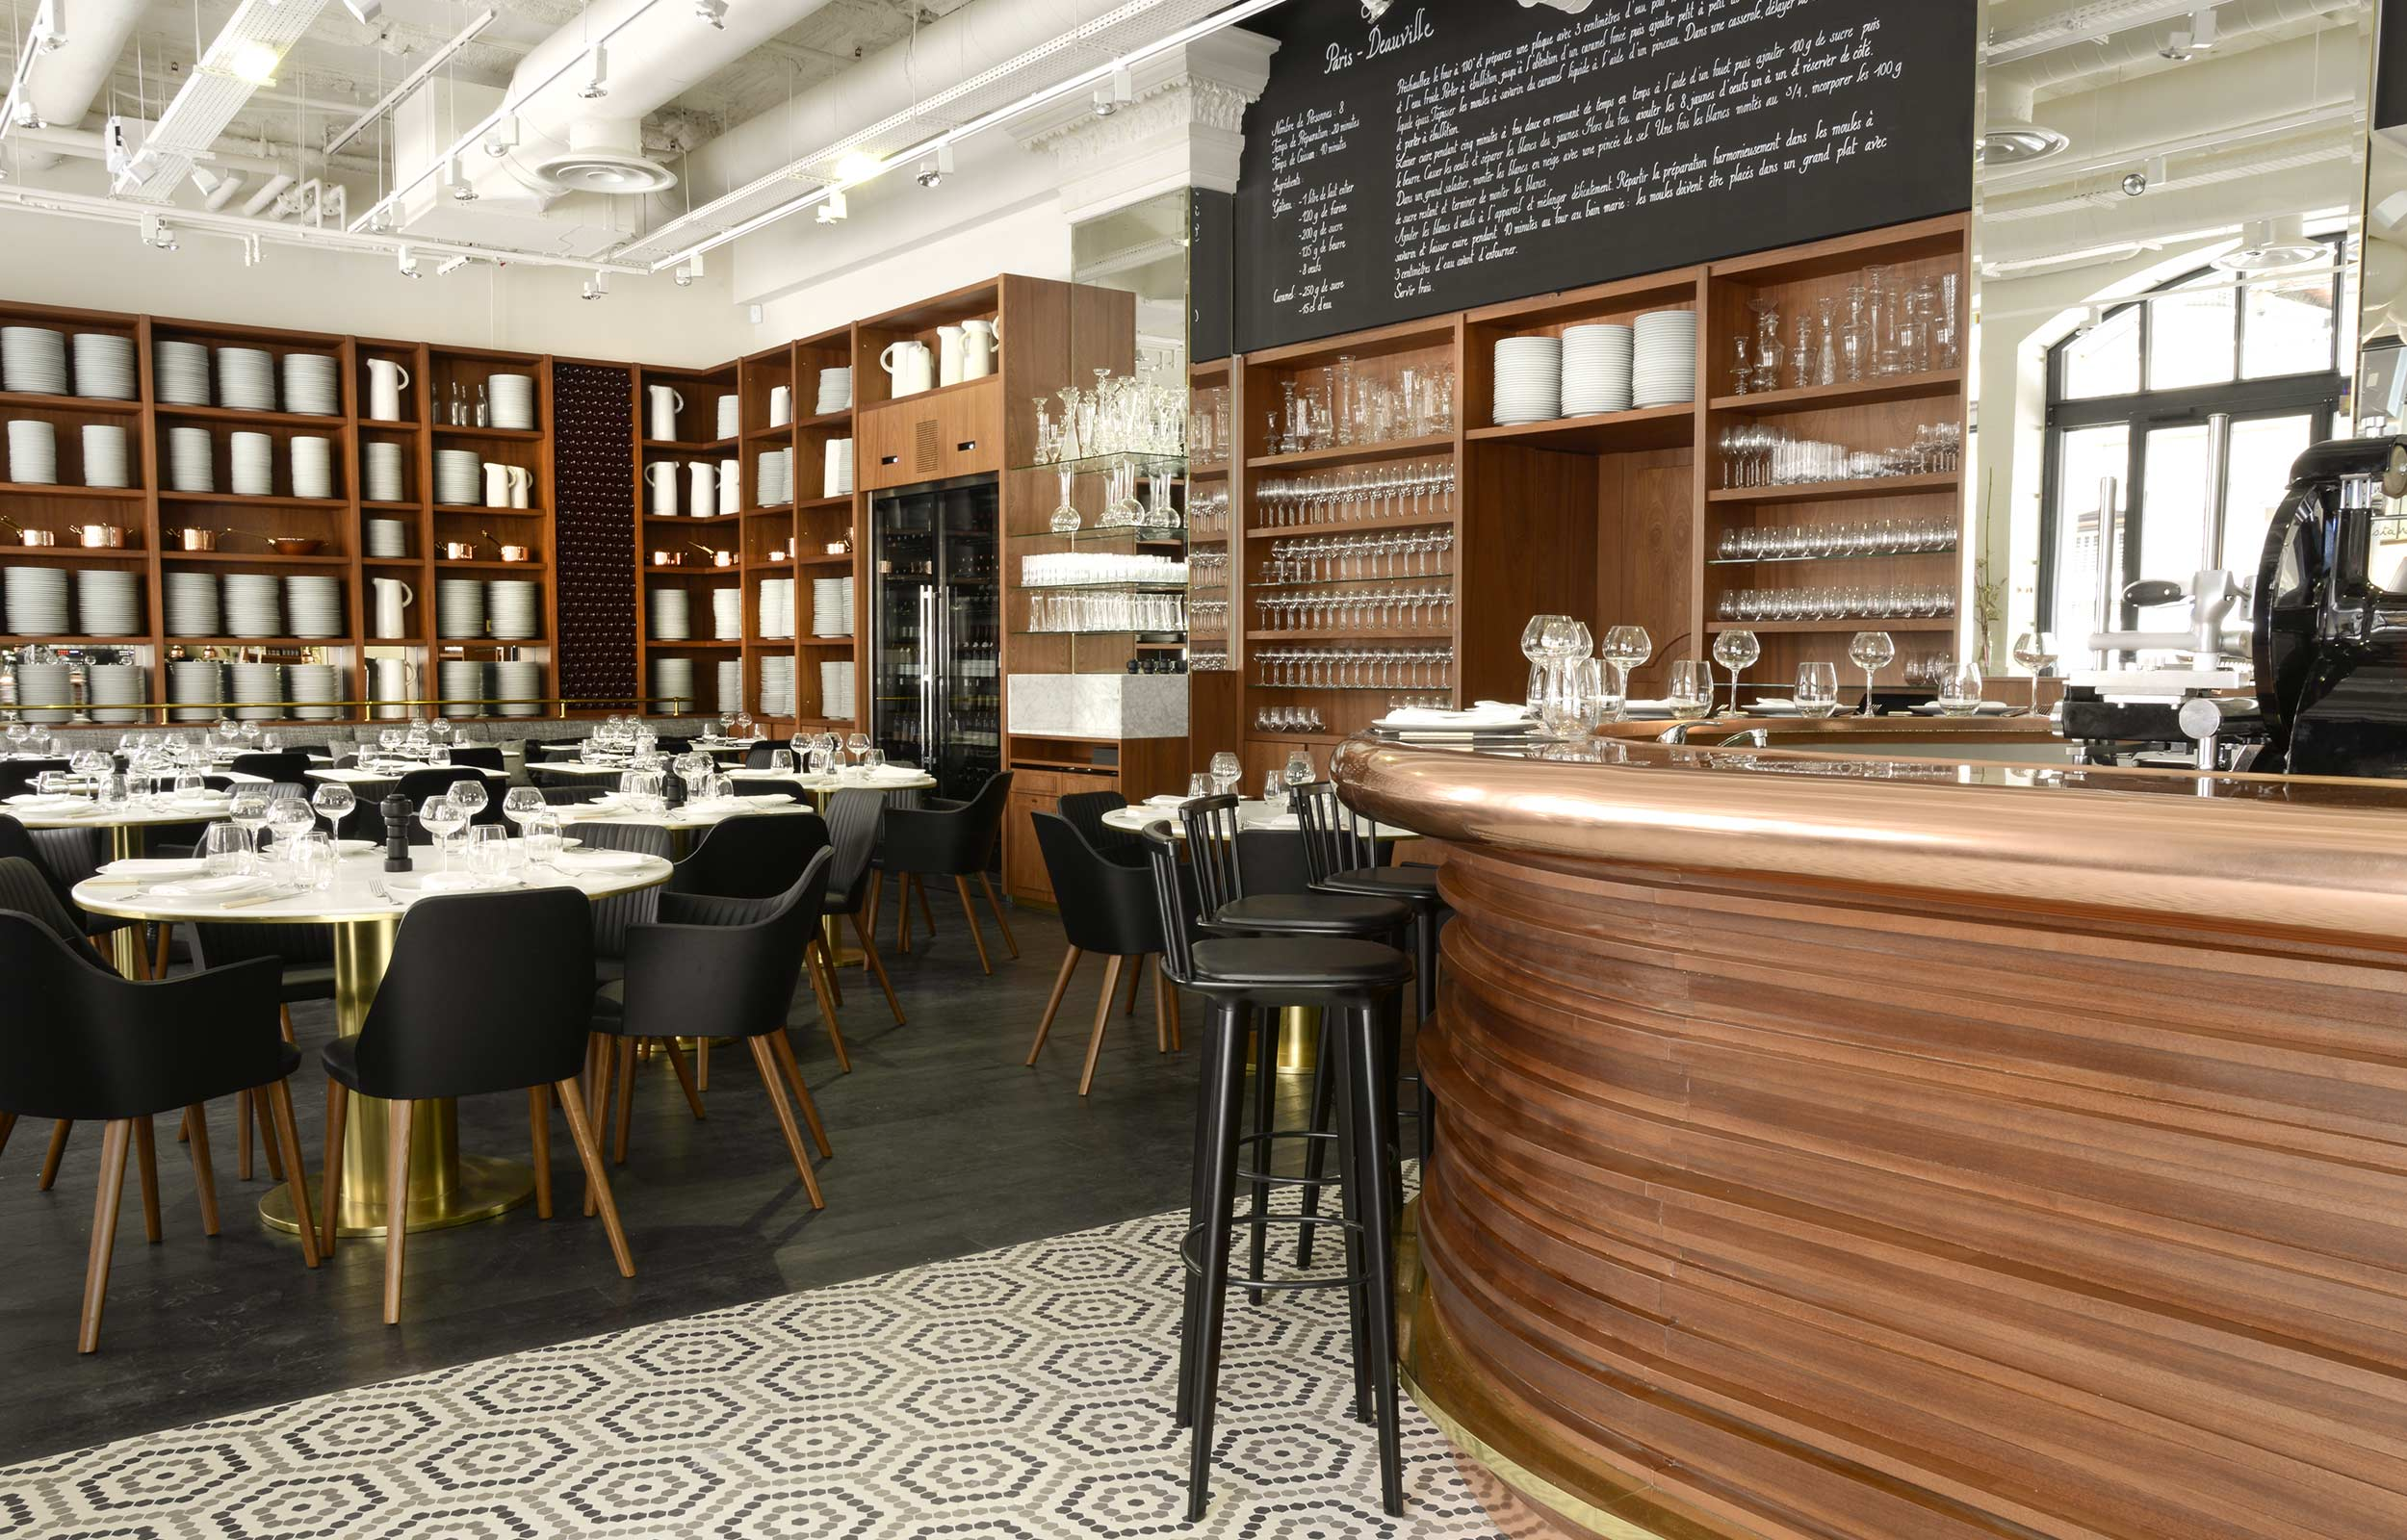 Le lazare le bistrot chic d eric fr chon madimado 39 s blog for Table cuisine bistrot